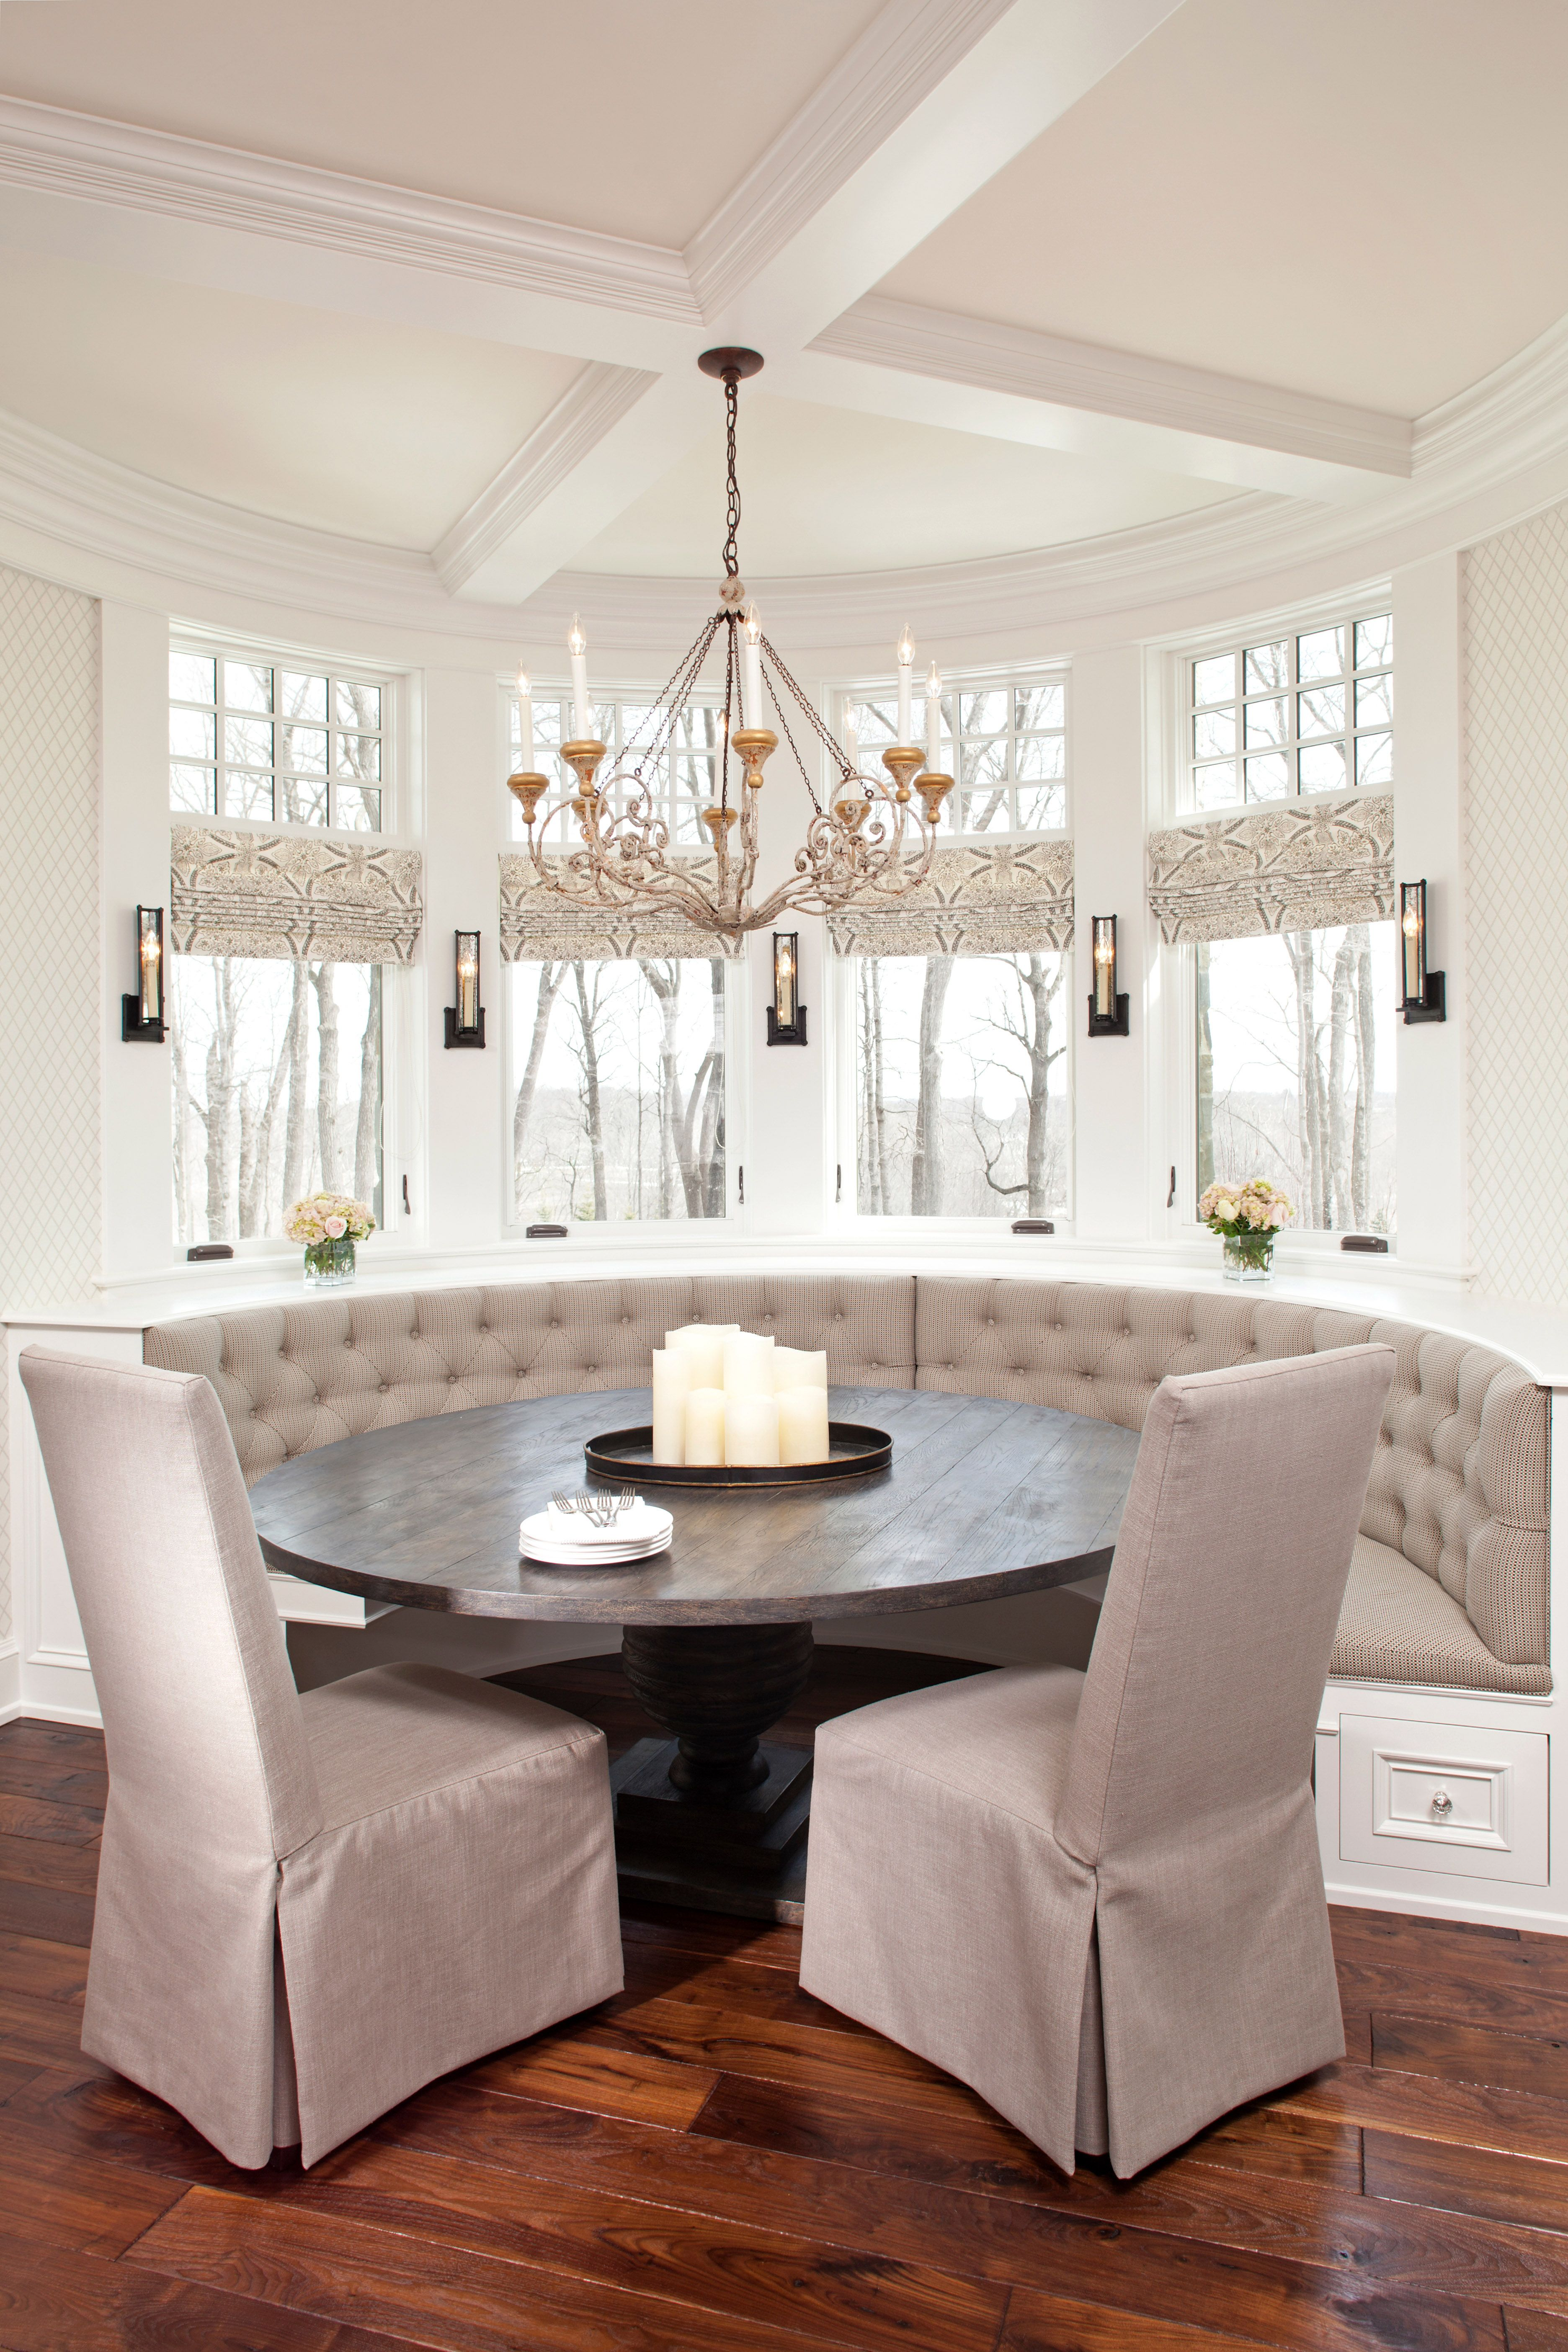 1000 ideas about kitchen booths on pinterest nooks banquettes and - Breakfast Nook Hamptons In The Country Eskuche Design Www Eskuche Com